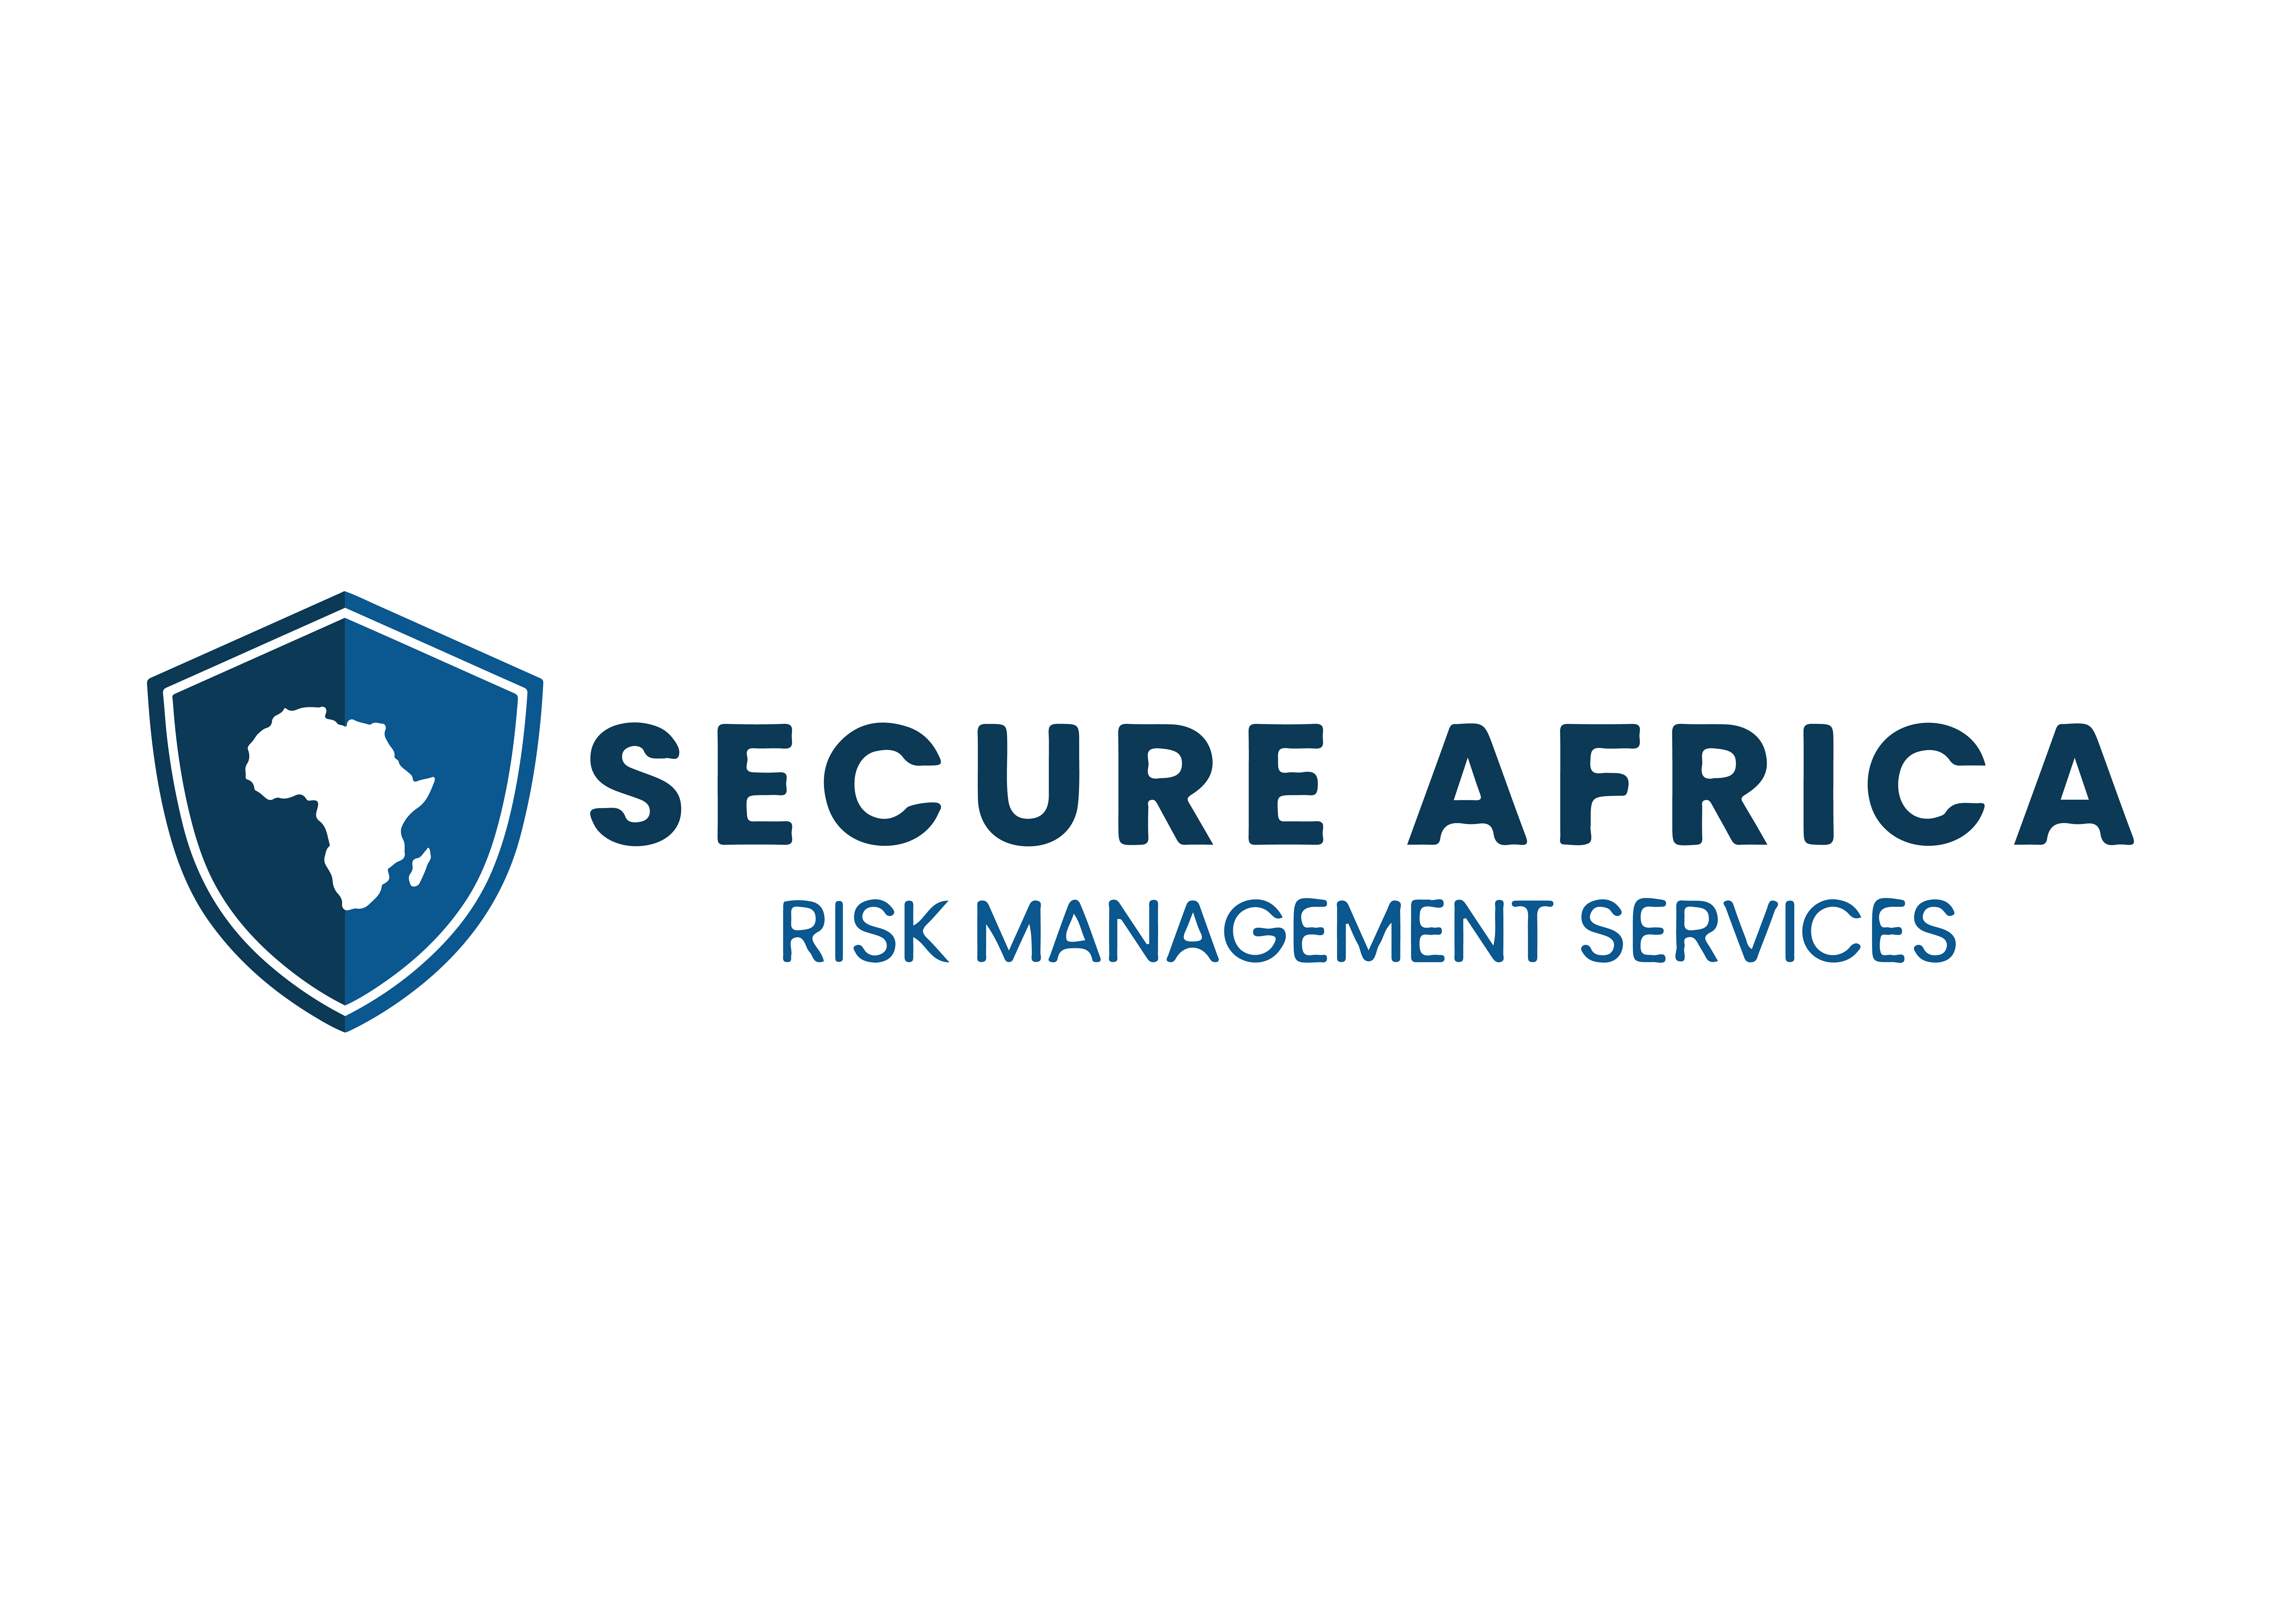 Secure Africa